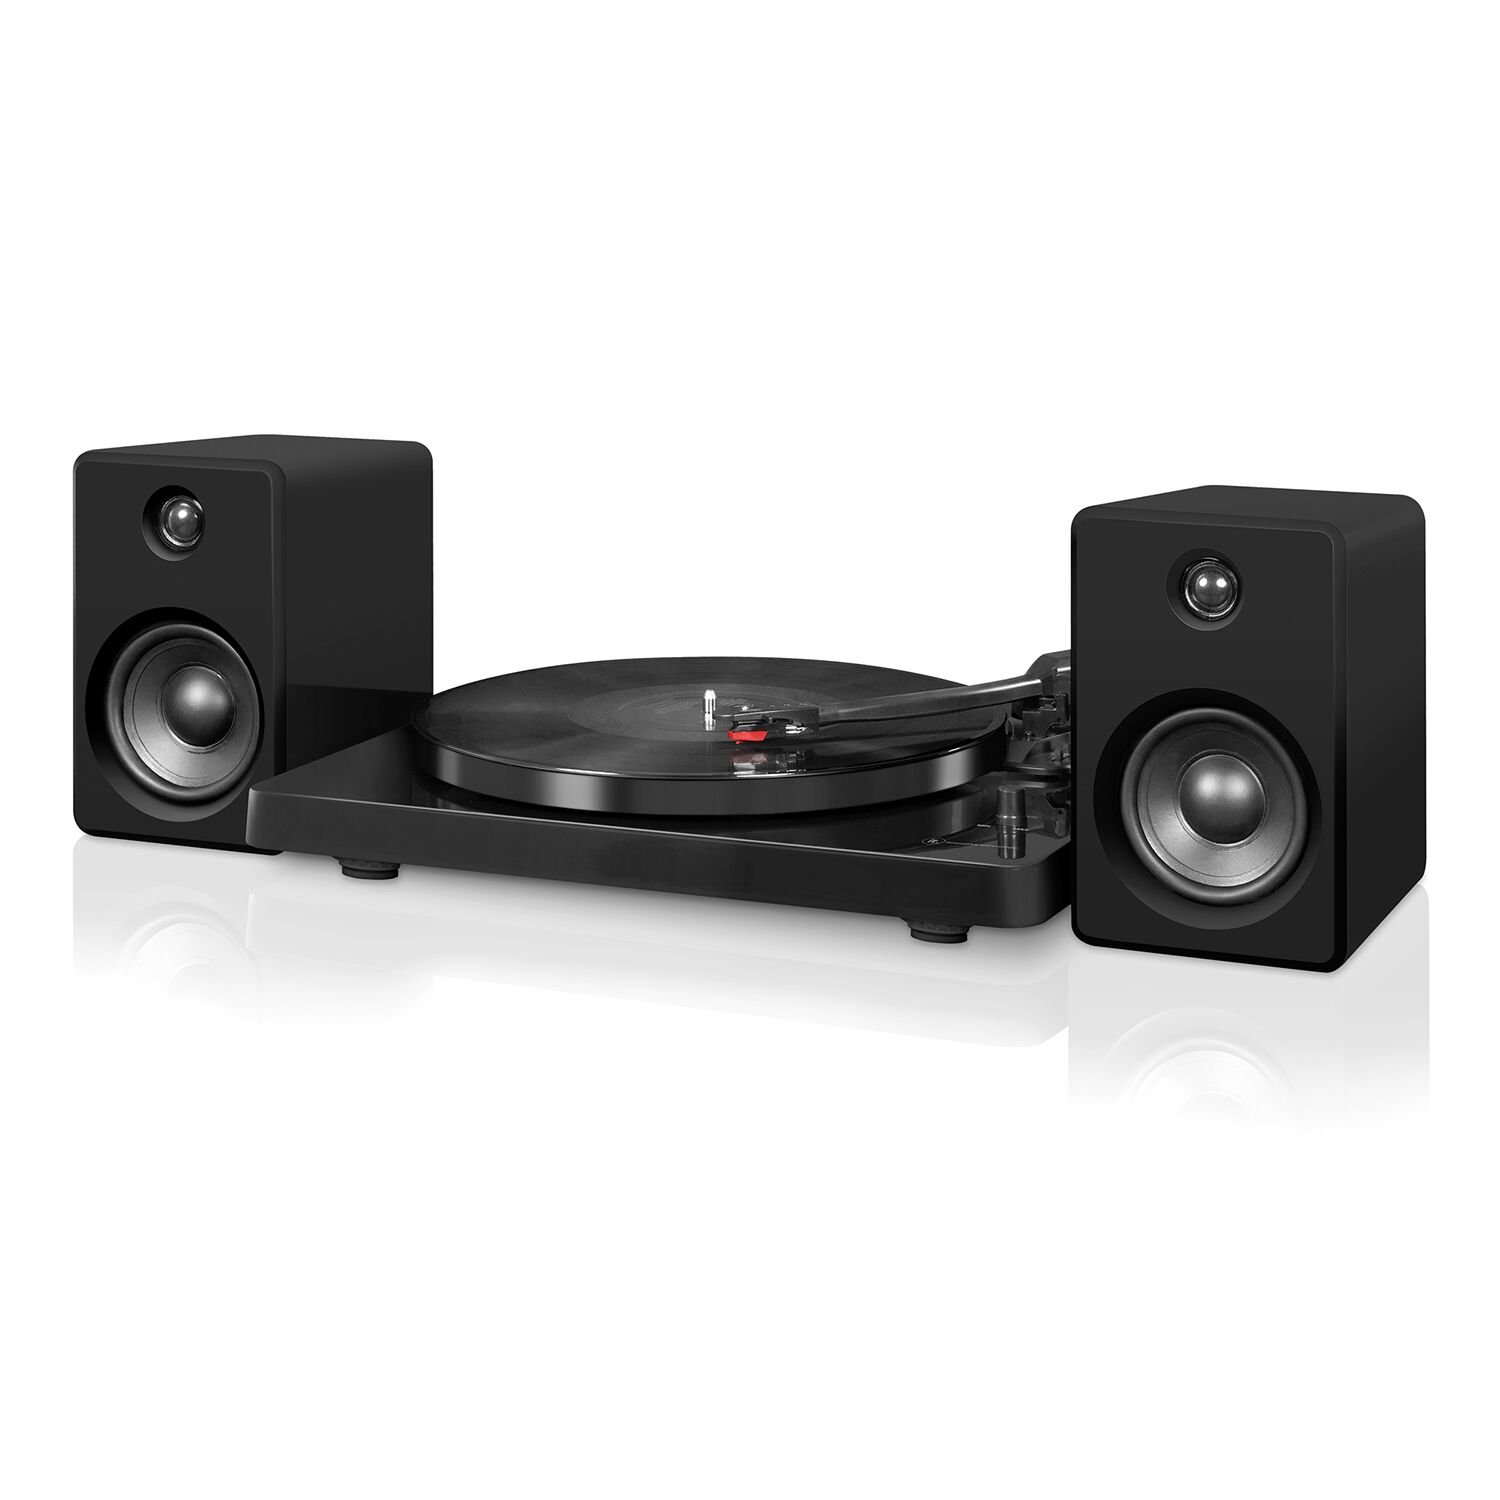 Victrola Modern 3-Speed Bluetooth Turntable with 50 Watt Speakers, Black Piano Finish by Victrola (Image #1)